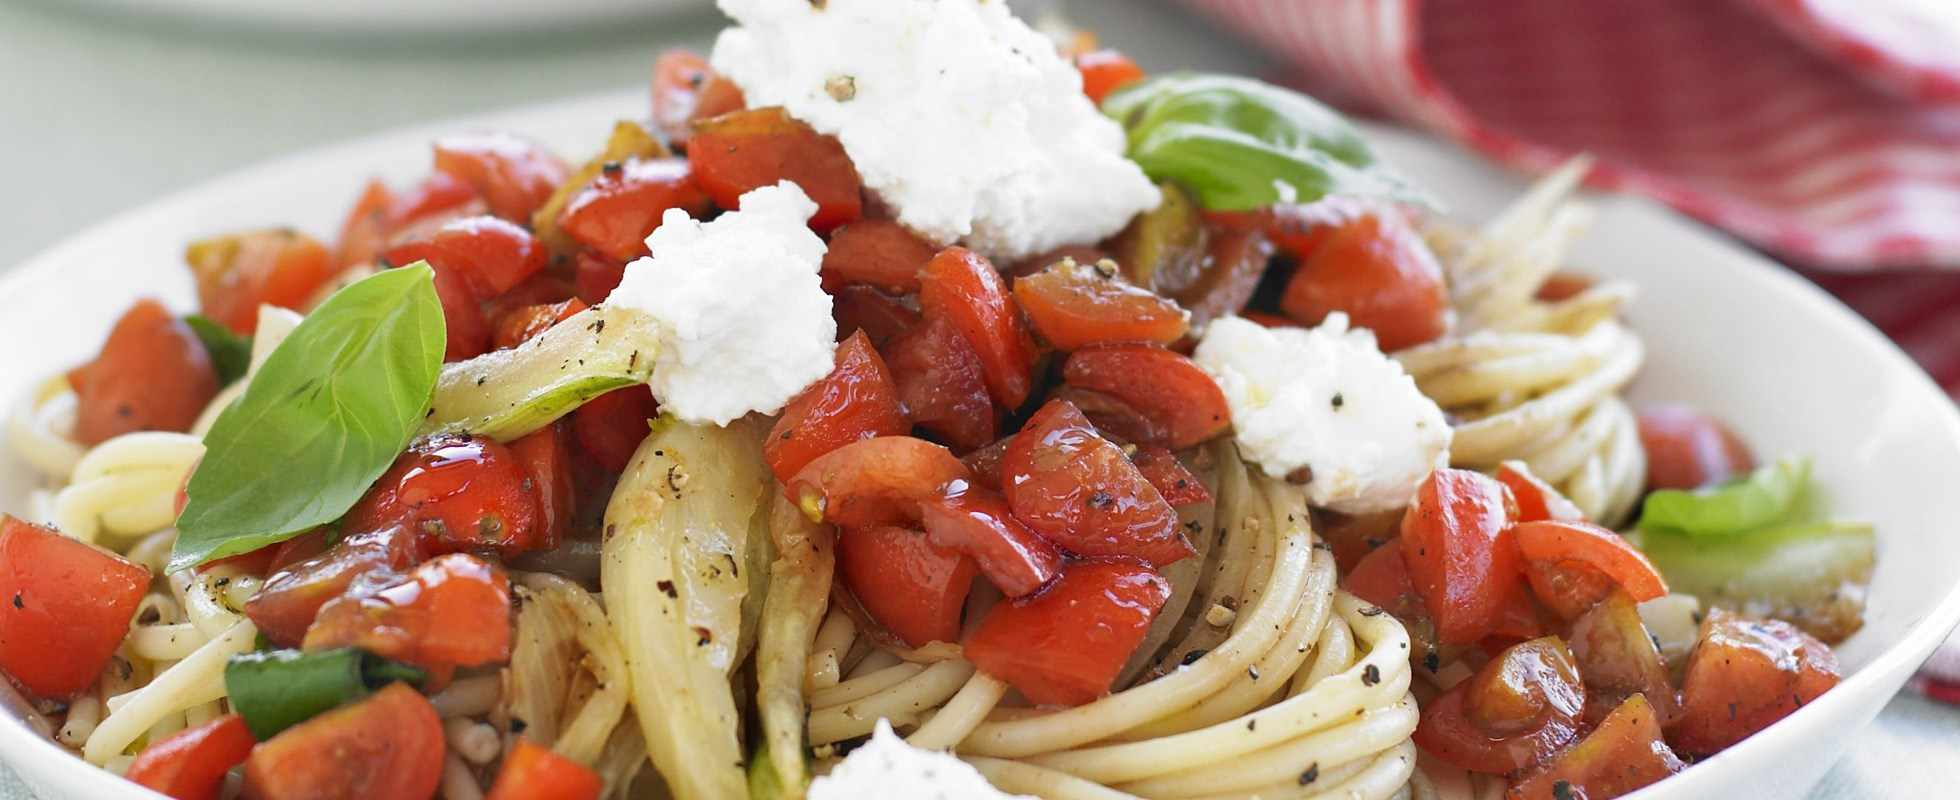 Spaghetti with fennel, tomatoes and ricotta